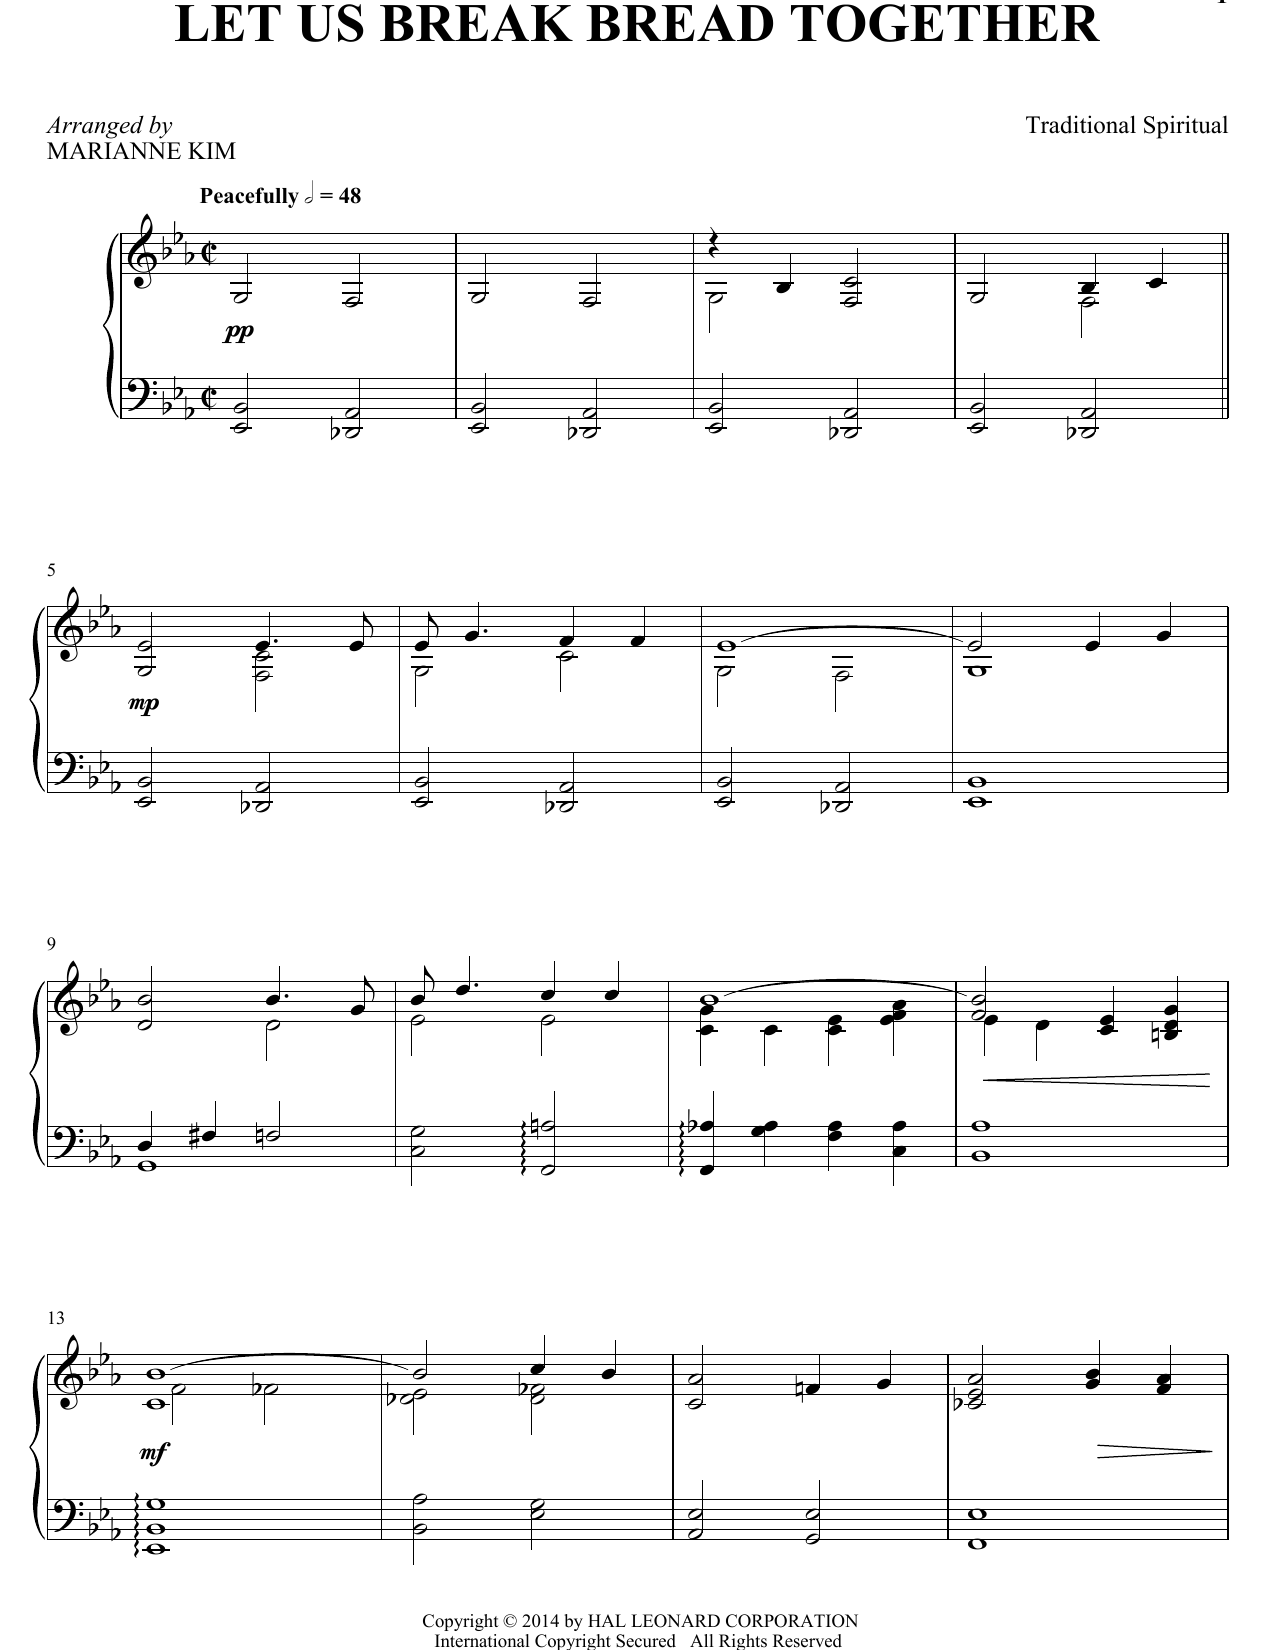 Let Us Break Bread Together Sheet Music